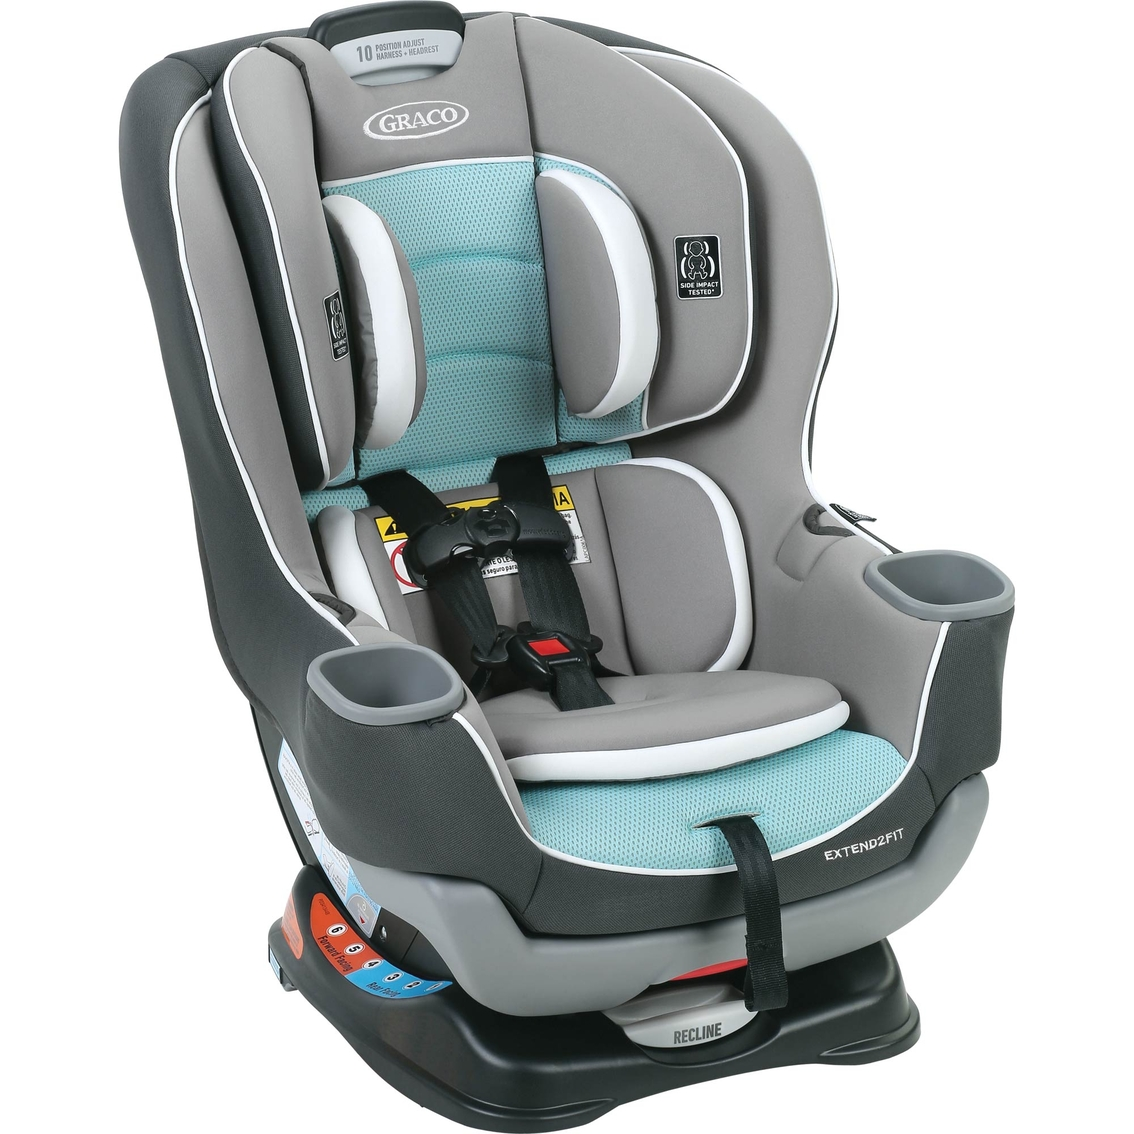 graco extend2fit convertible car seat convertible seats baby toys shop the exchange. Black Bedroom Furniture Sets. Home Design Ideas